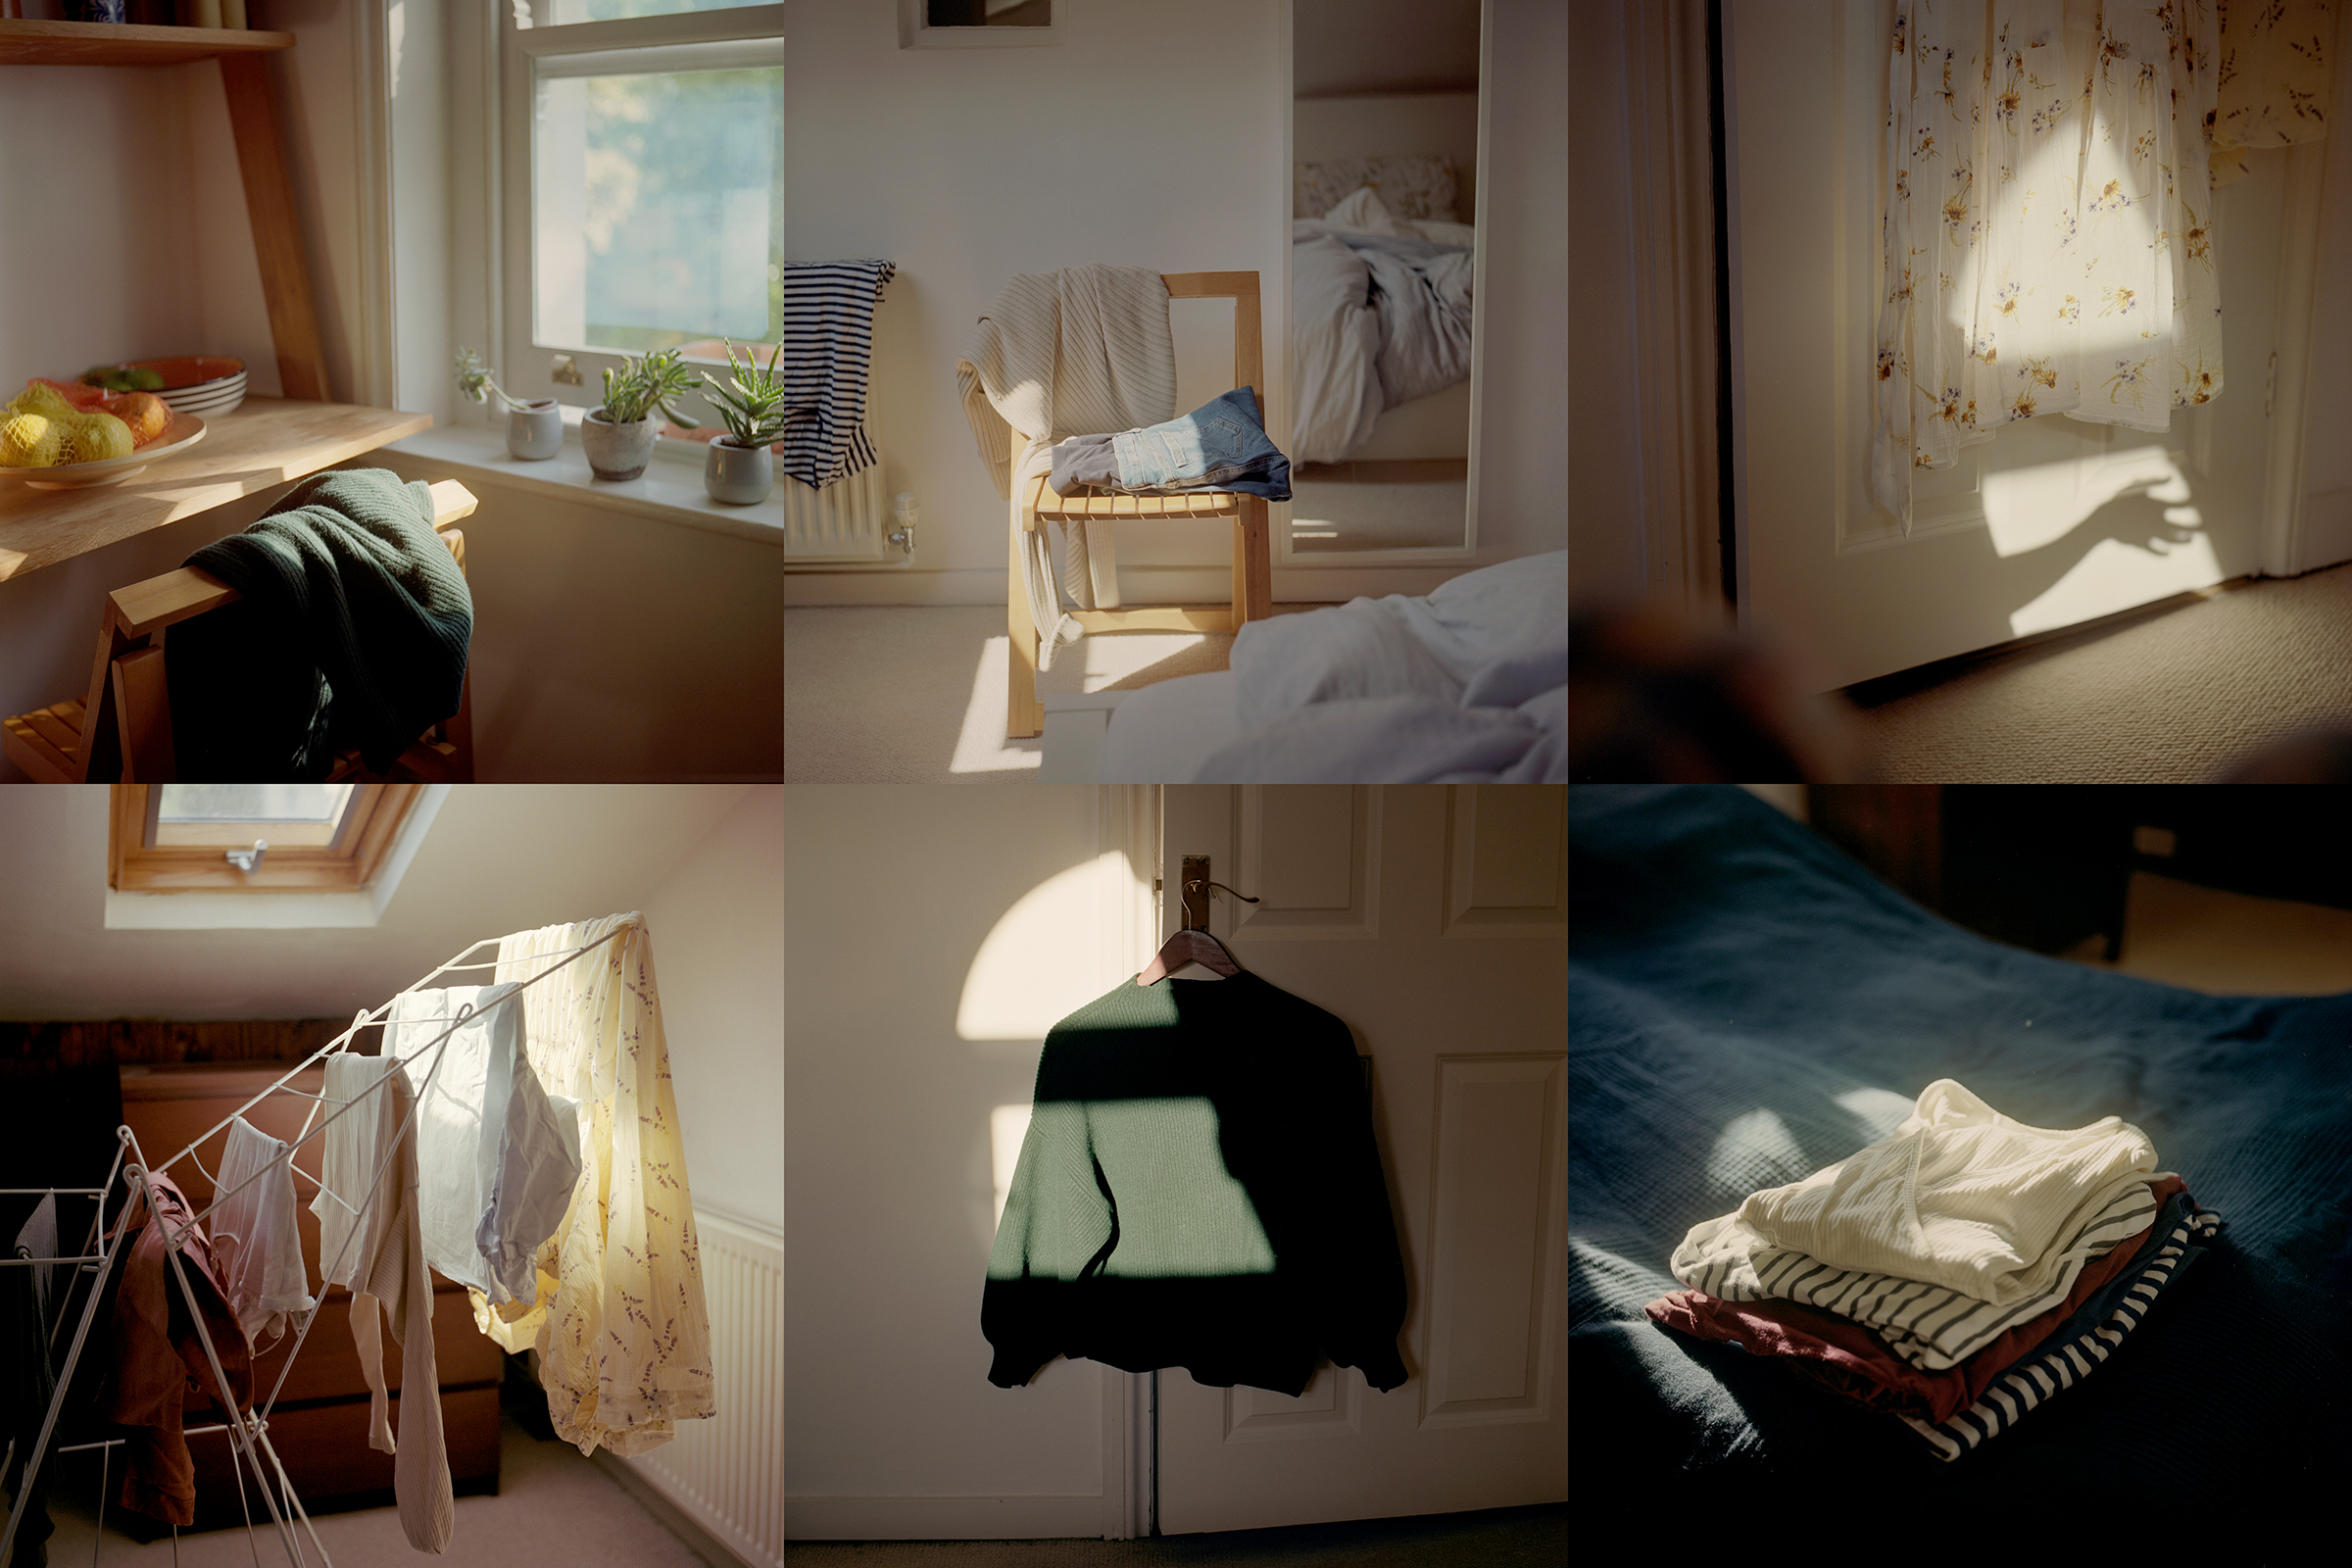 Composite image of six still-life photographs of maternity clothing inside a home. MUST CREDIT: Photo for The Washington Post by Tori Ferenc